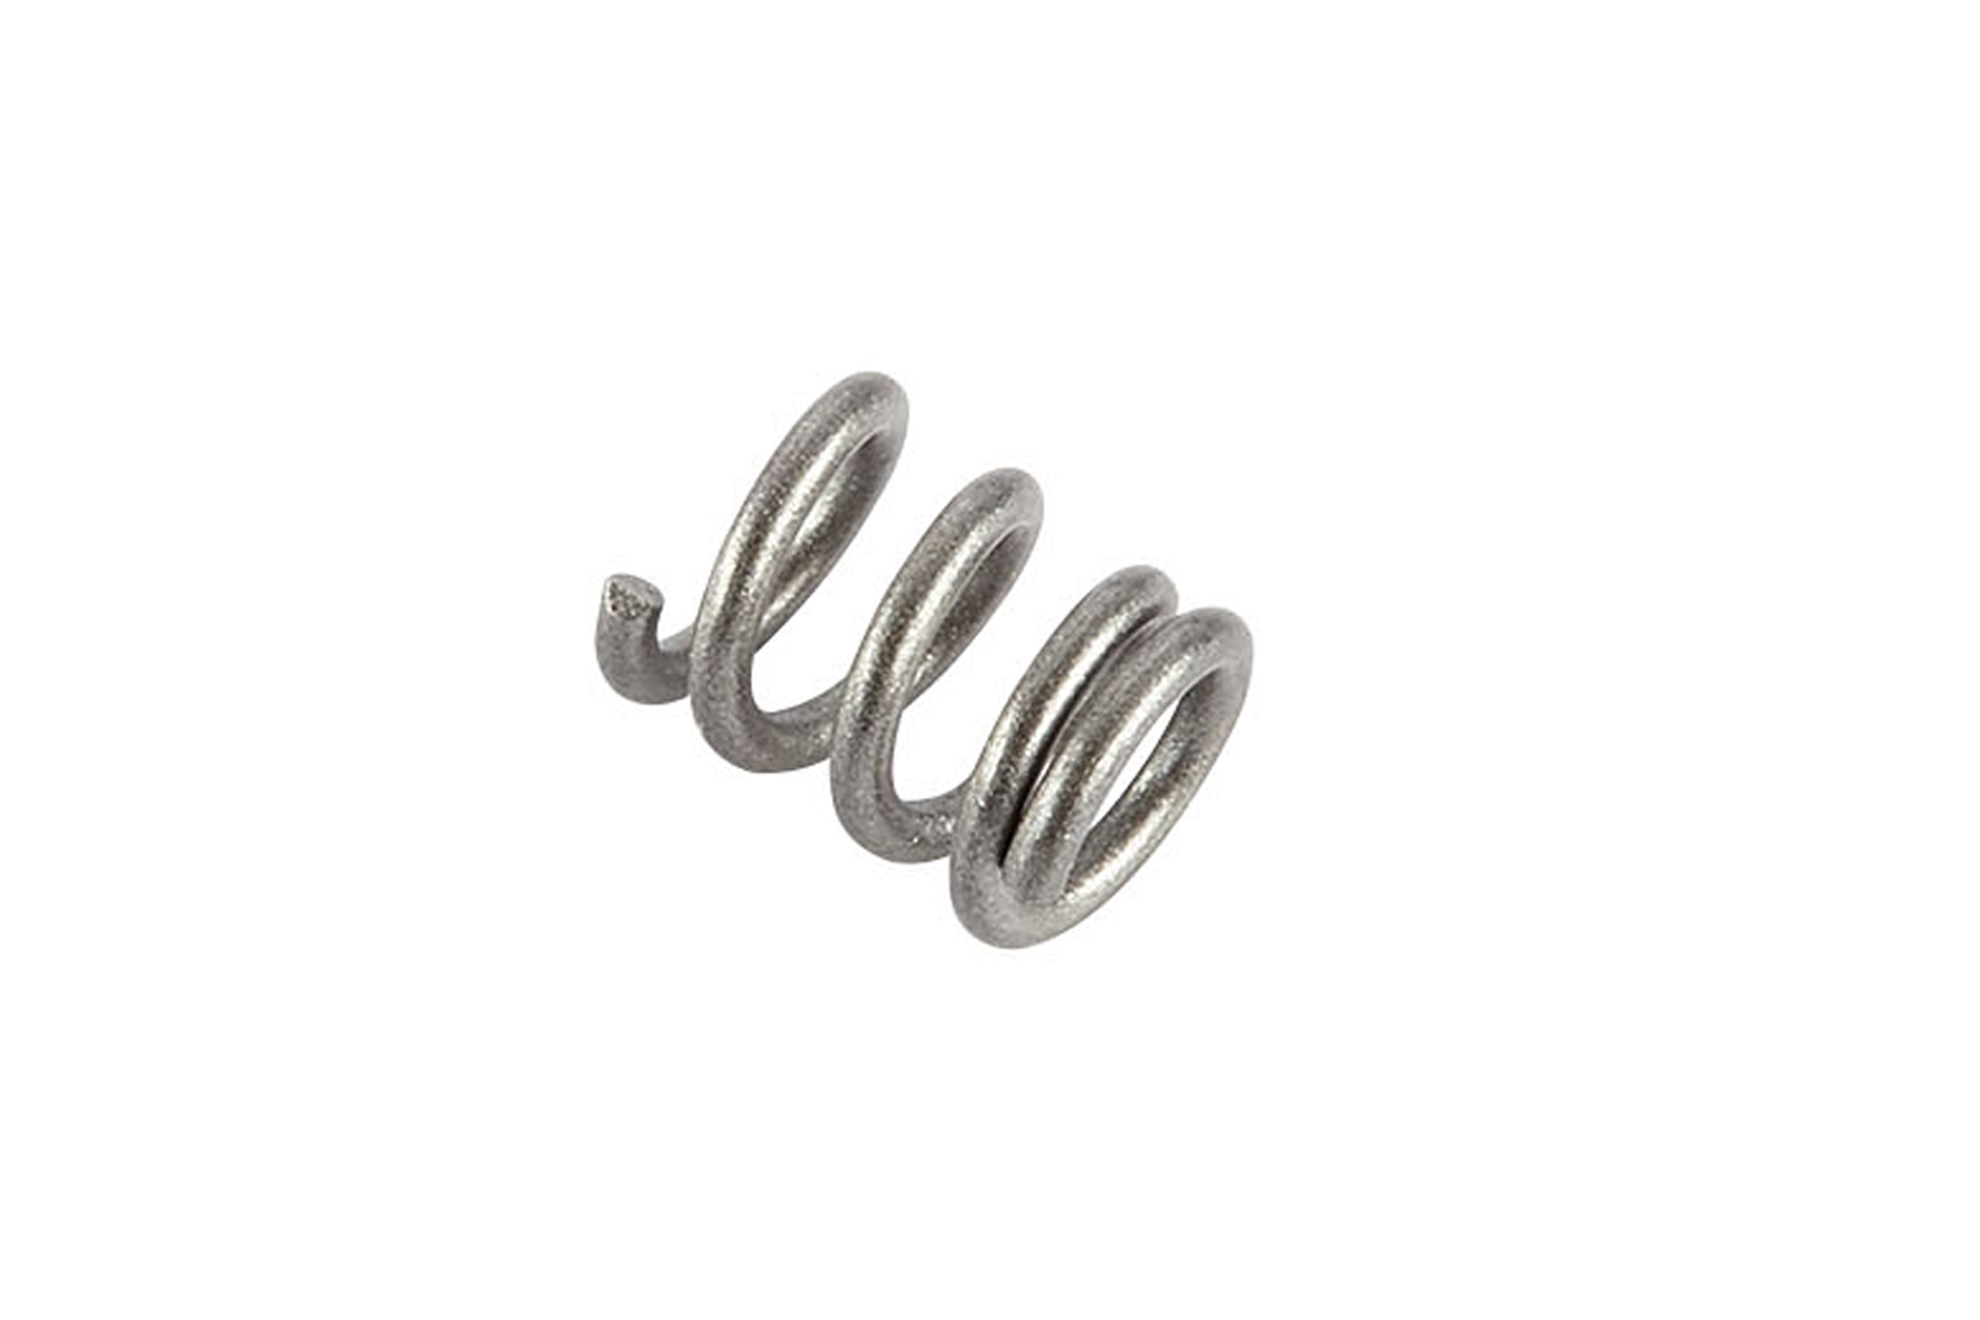 EXTRACTOR SPRING, CHROME SILICON, 5.56